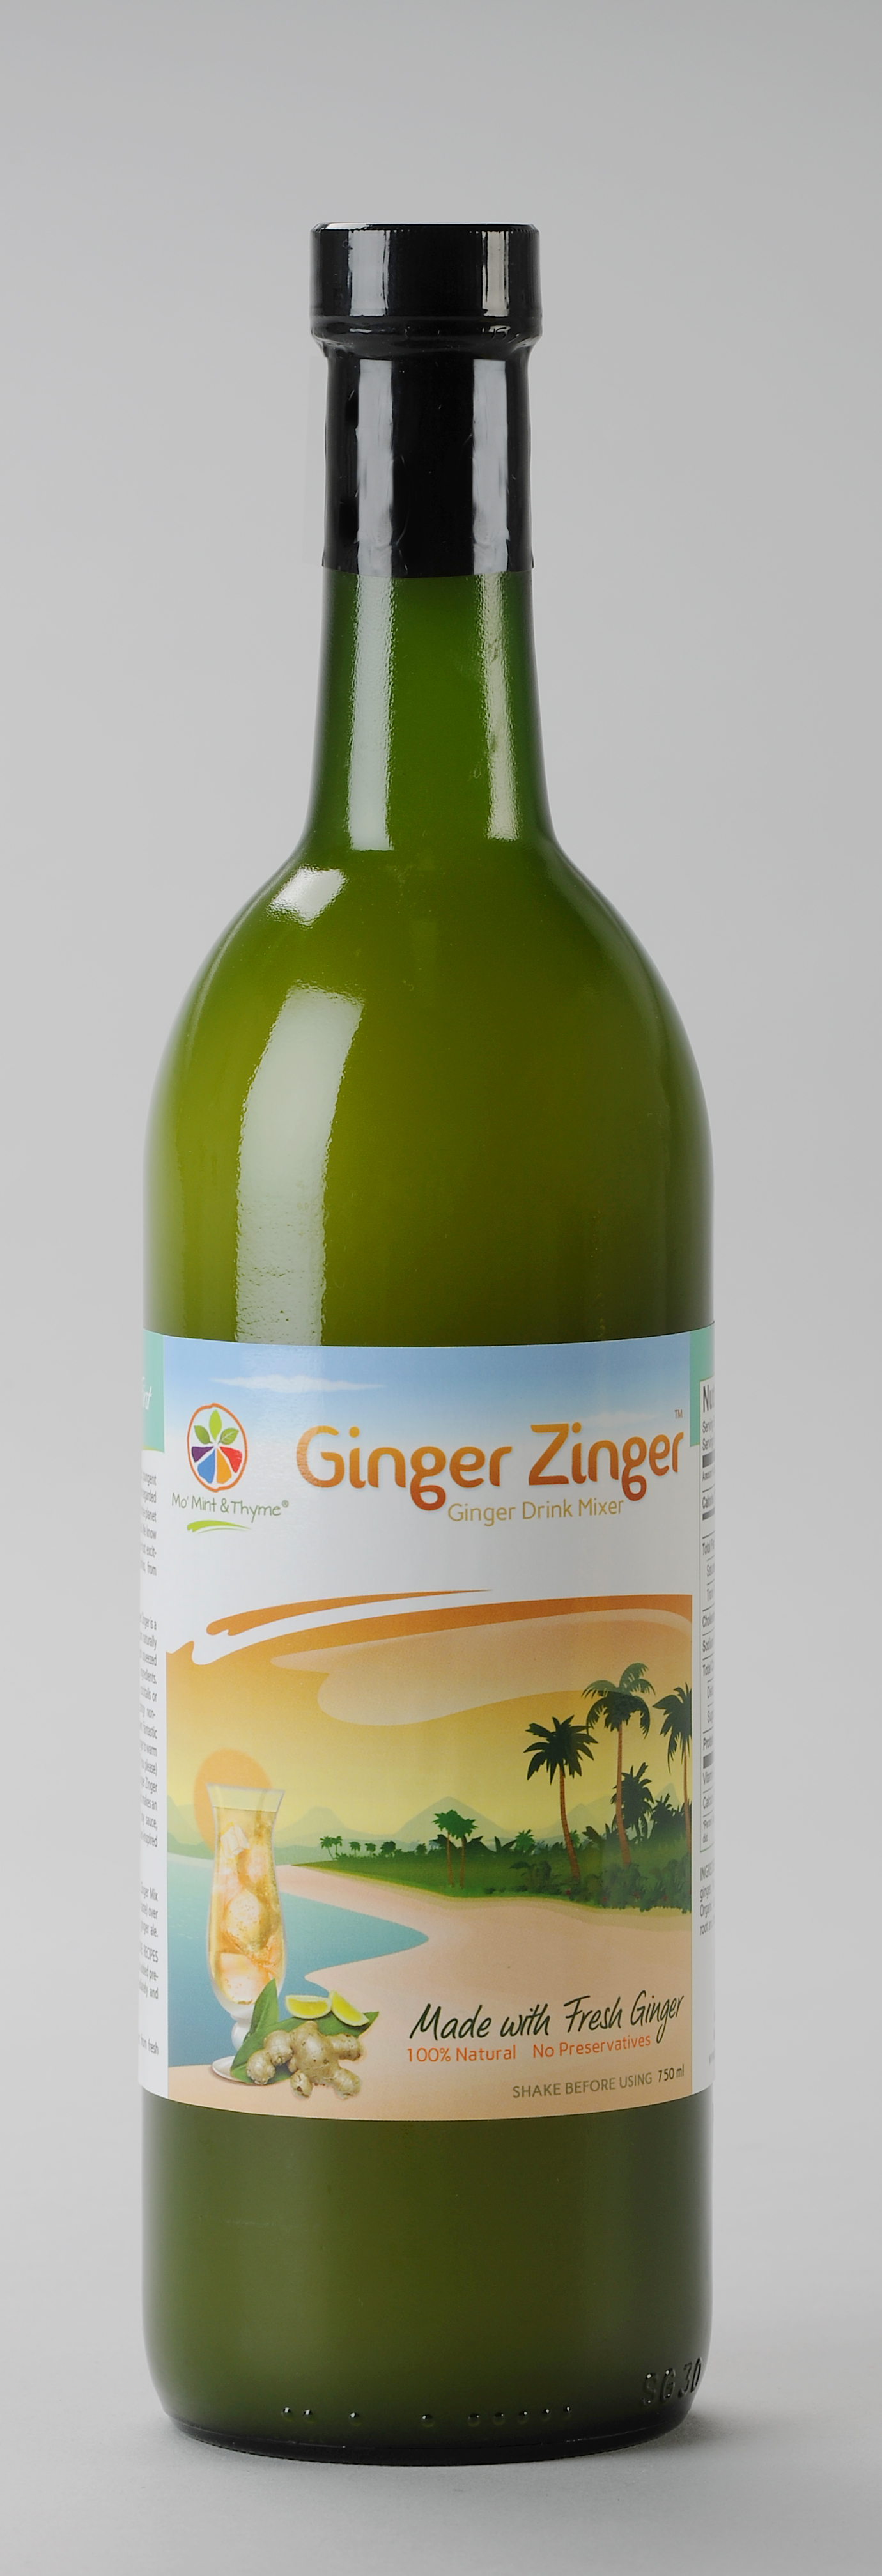 Ginger Zinger - 750 ml